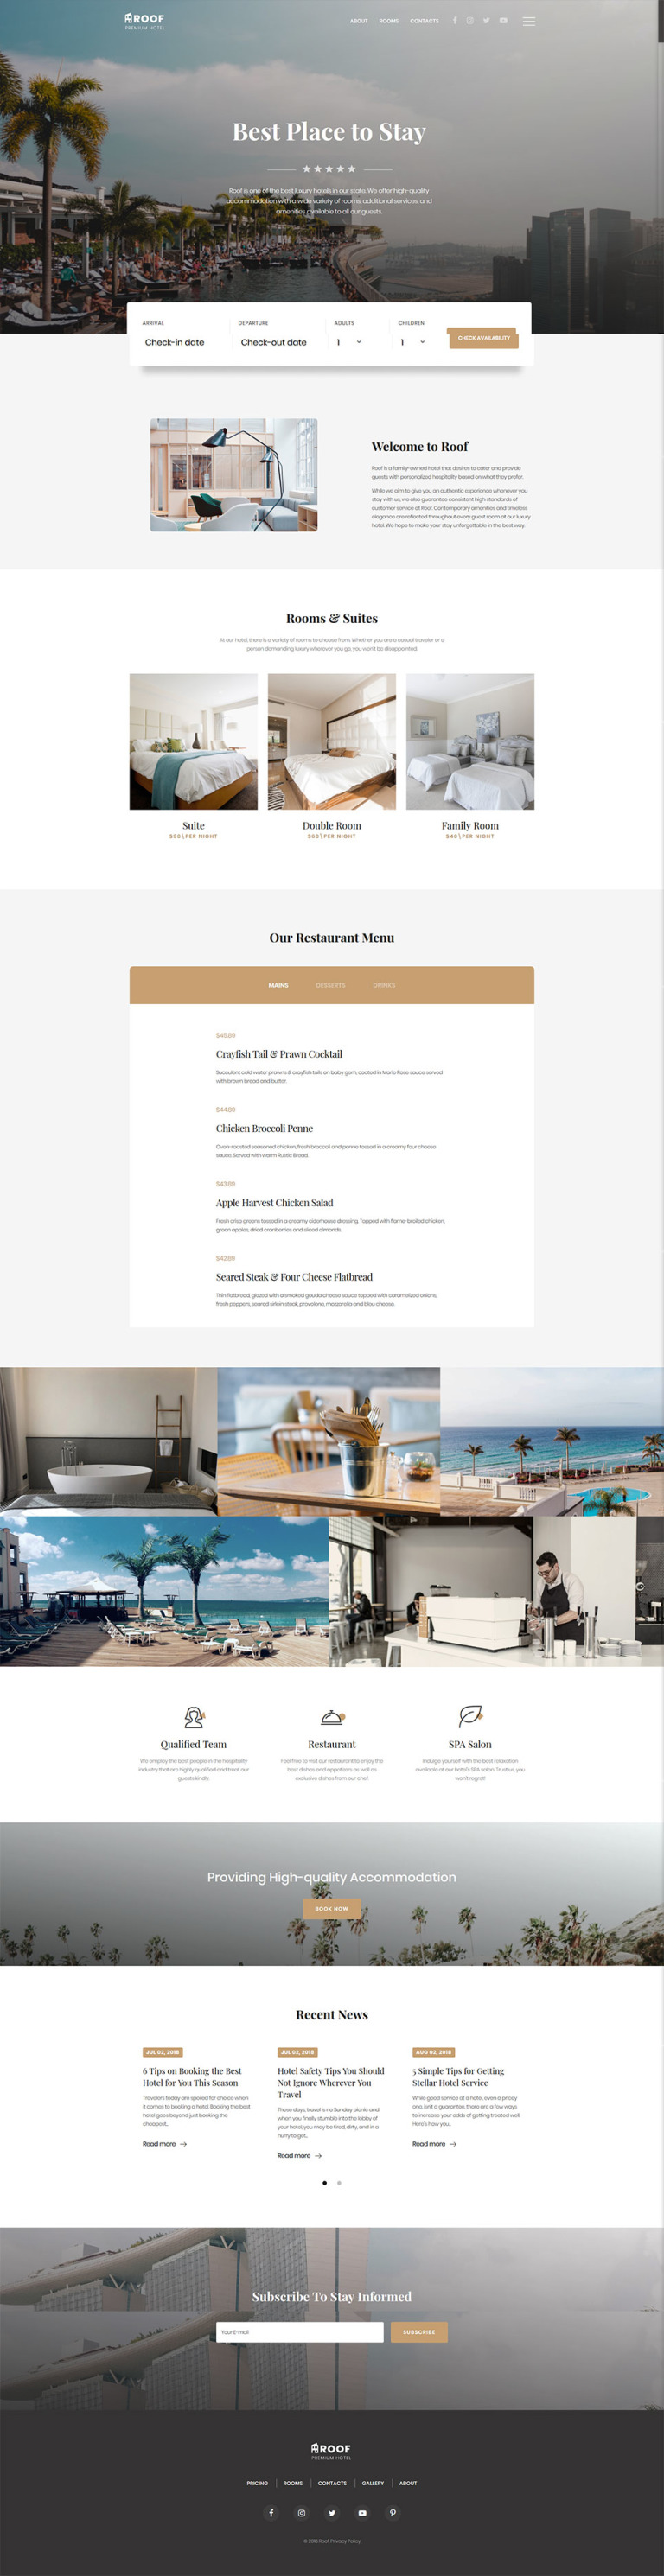 Small Inn - Mini Hotel Responsive Multipage Website Template New Screenshots BIG